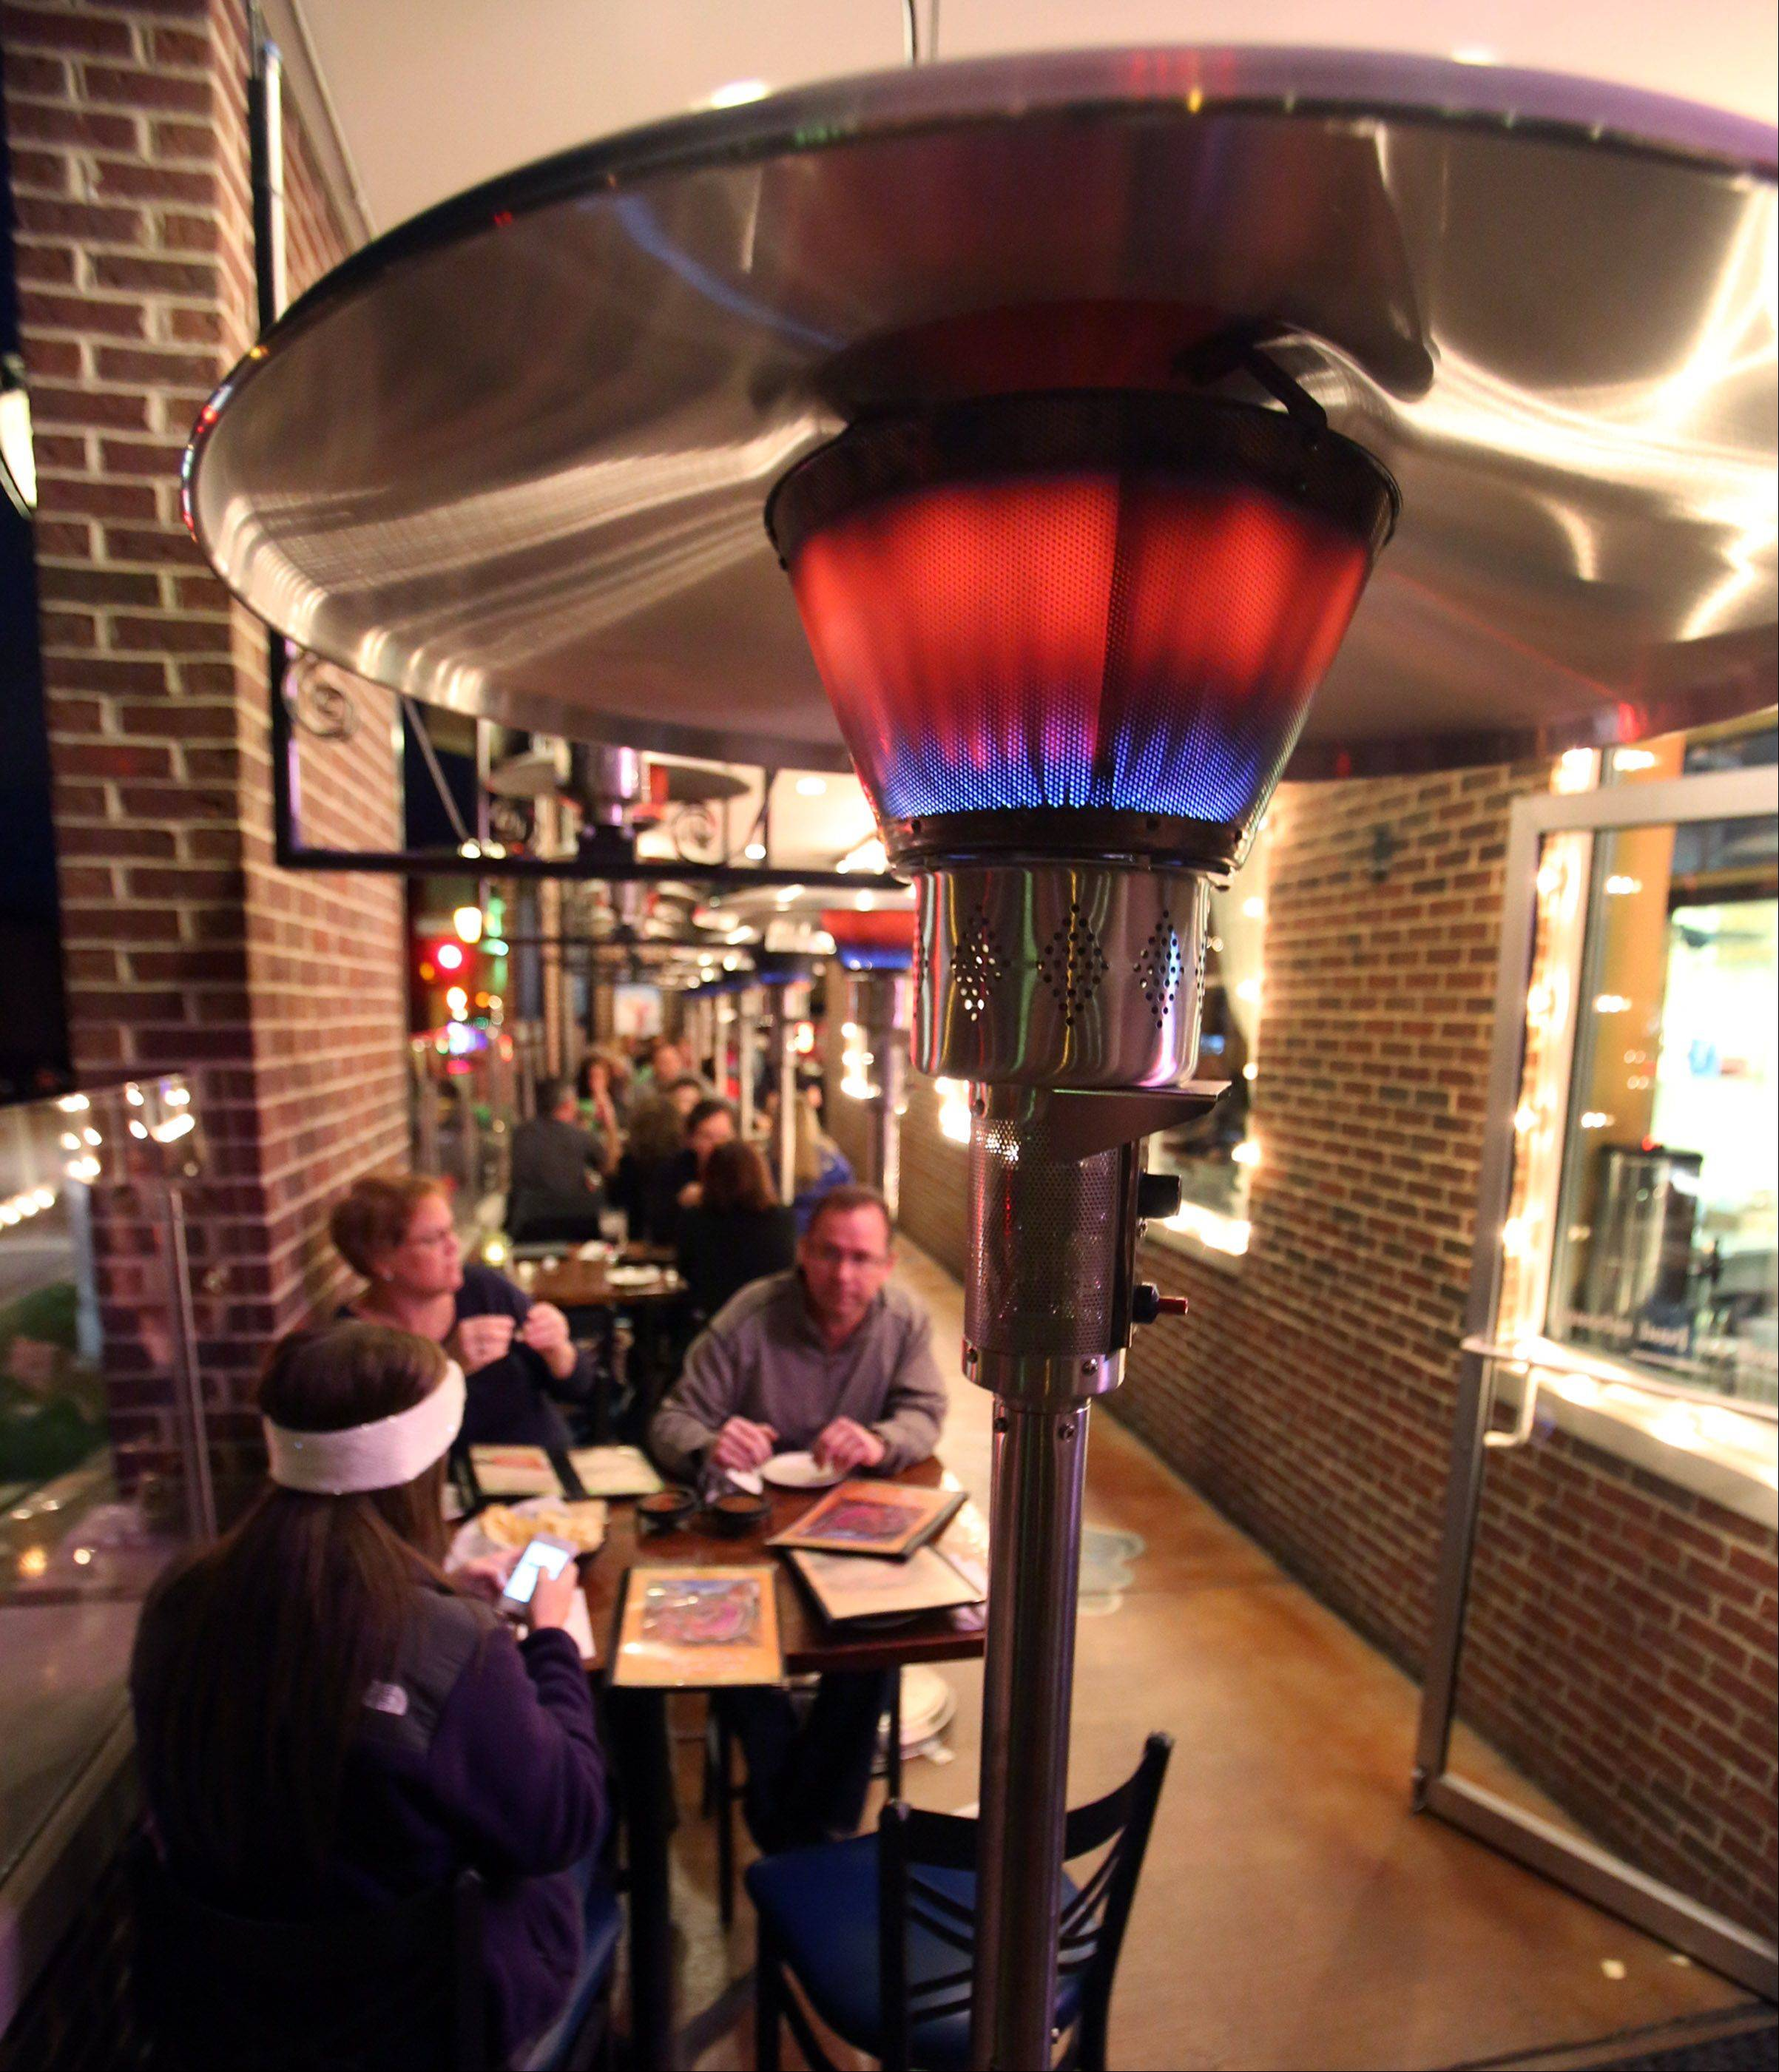 Heat lamps keep customers cozy on the outdoor patio at Libertyville's Casa Bonita Mexican Restaurant and Tequila Bar.